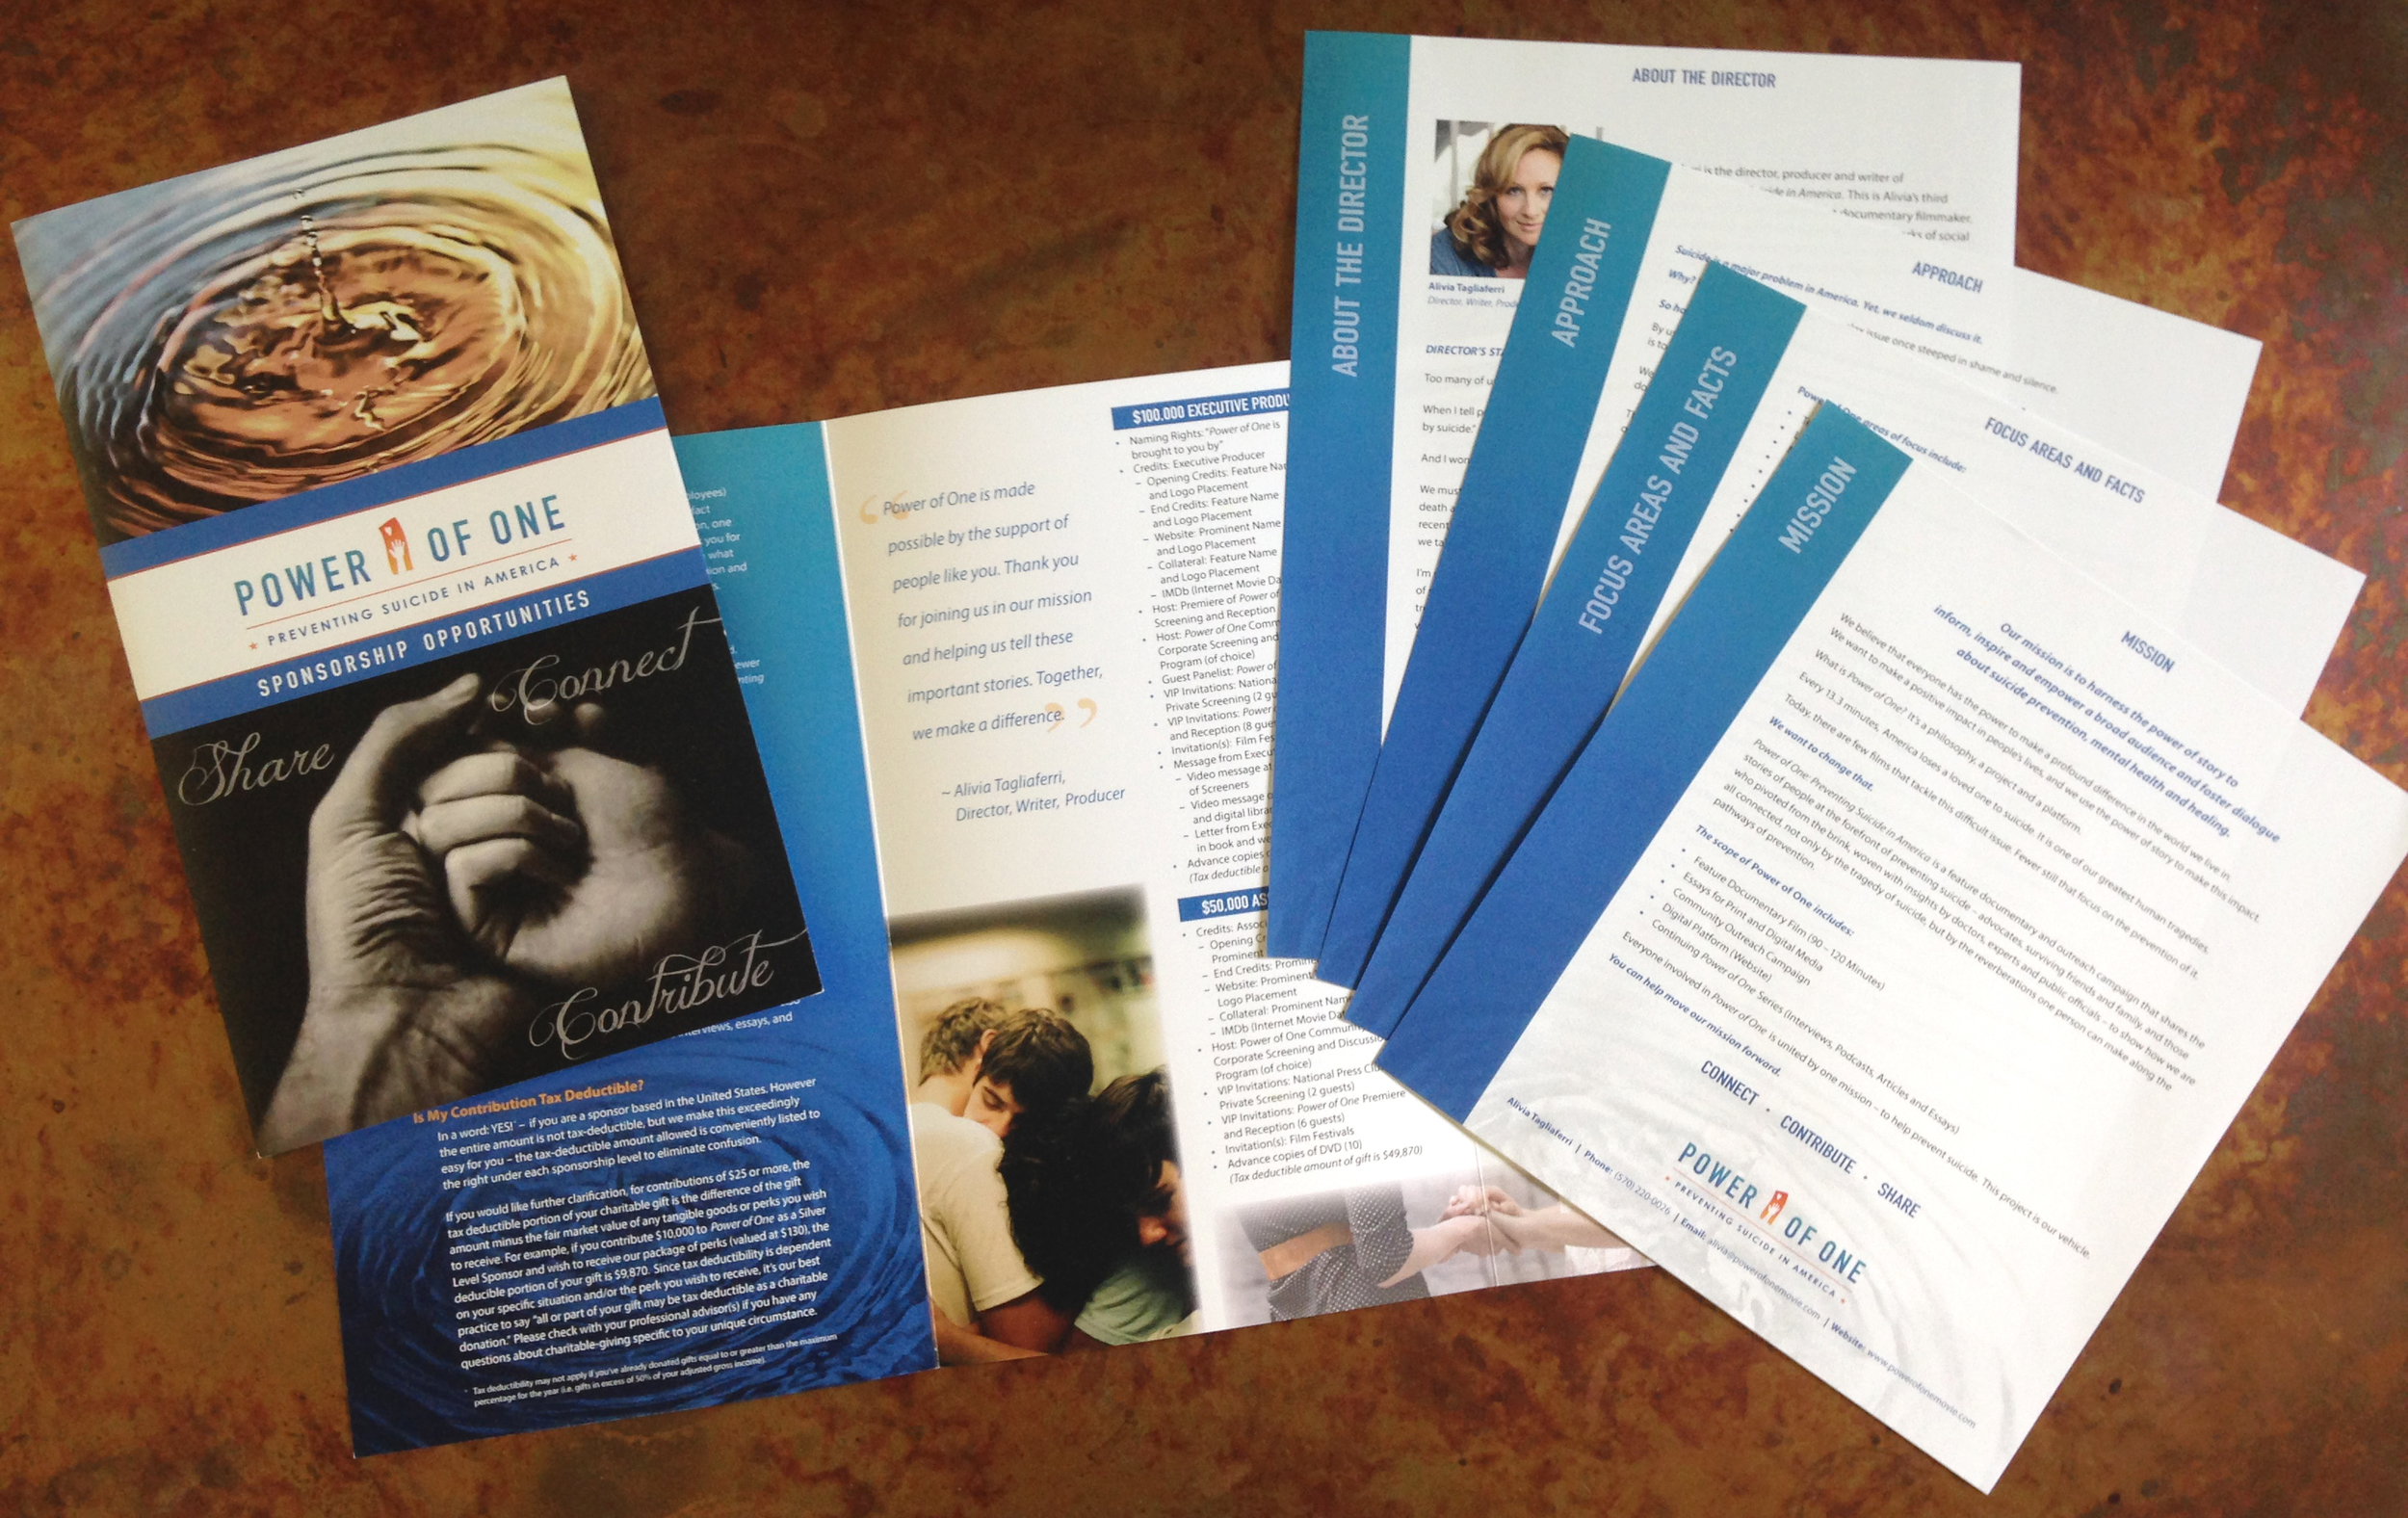 Power of One: Preventing Suicide in America   four-color, tri-fold brochure, and stepped media kit inserts, all printed with Ron Vermette at  Tray, Inc.